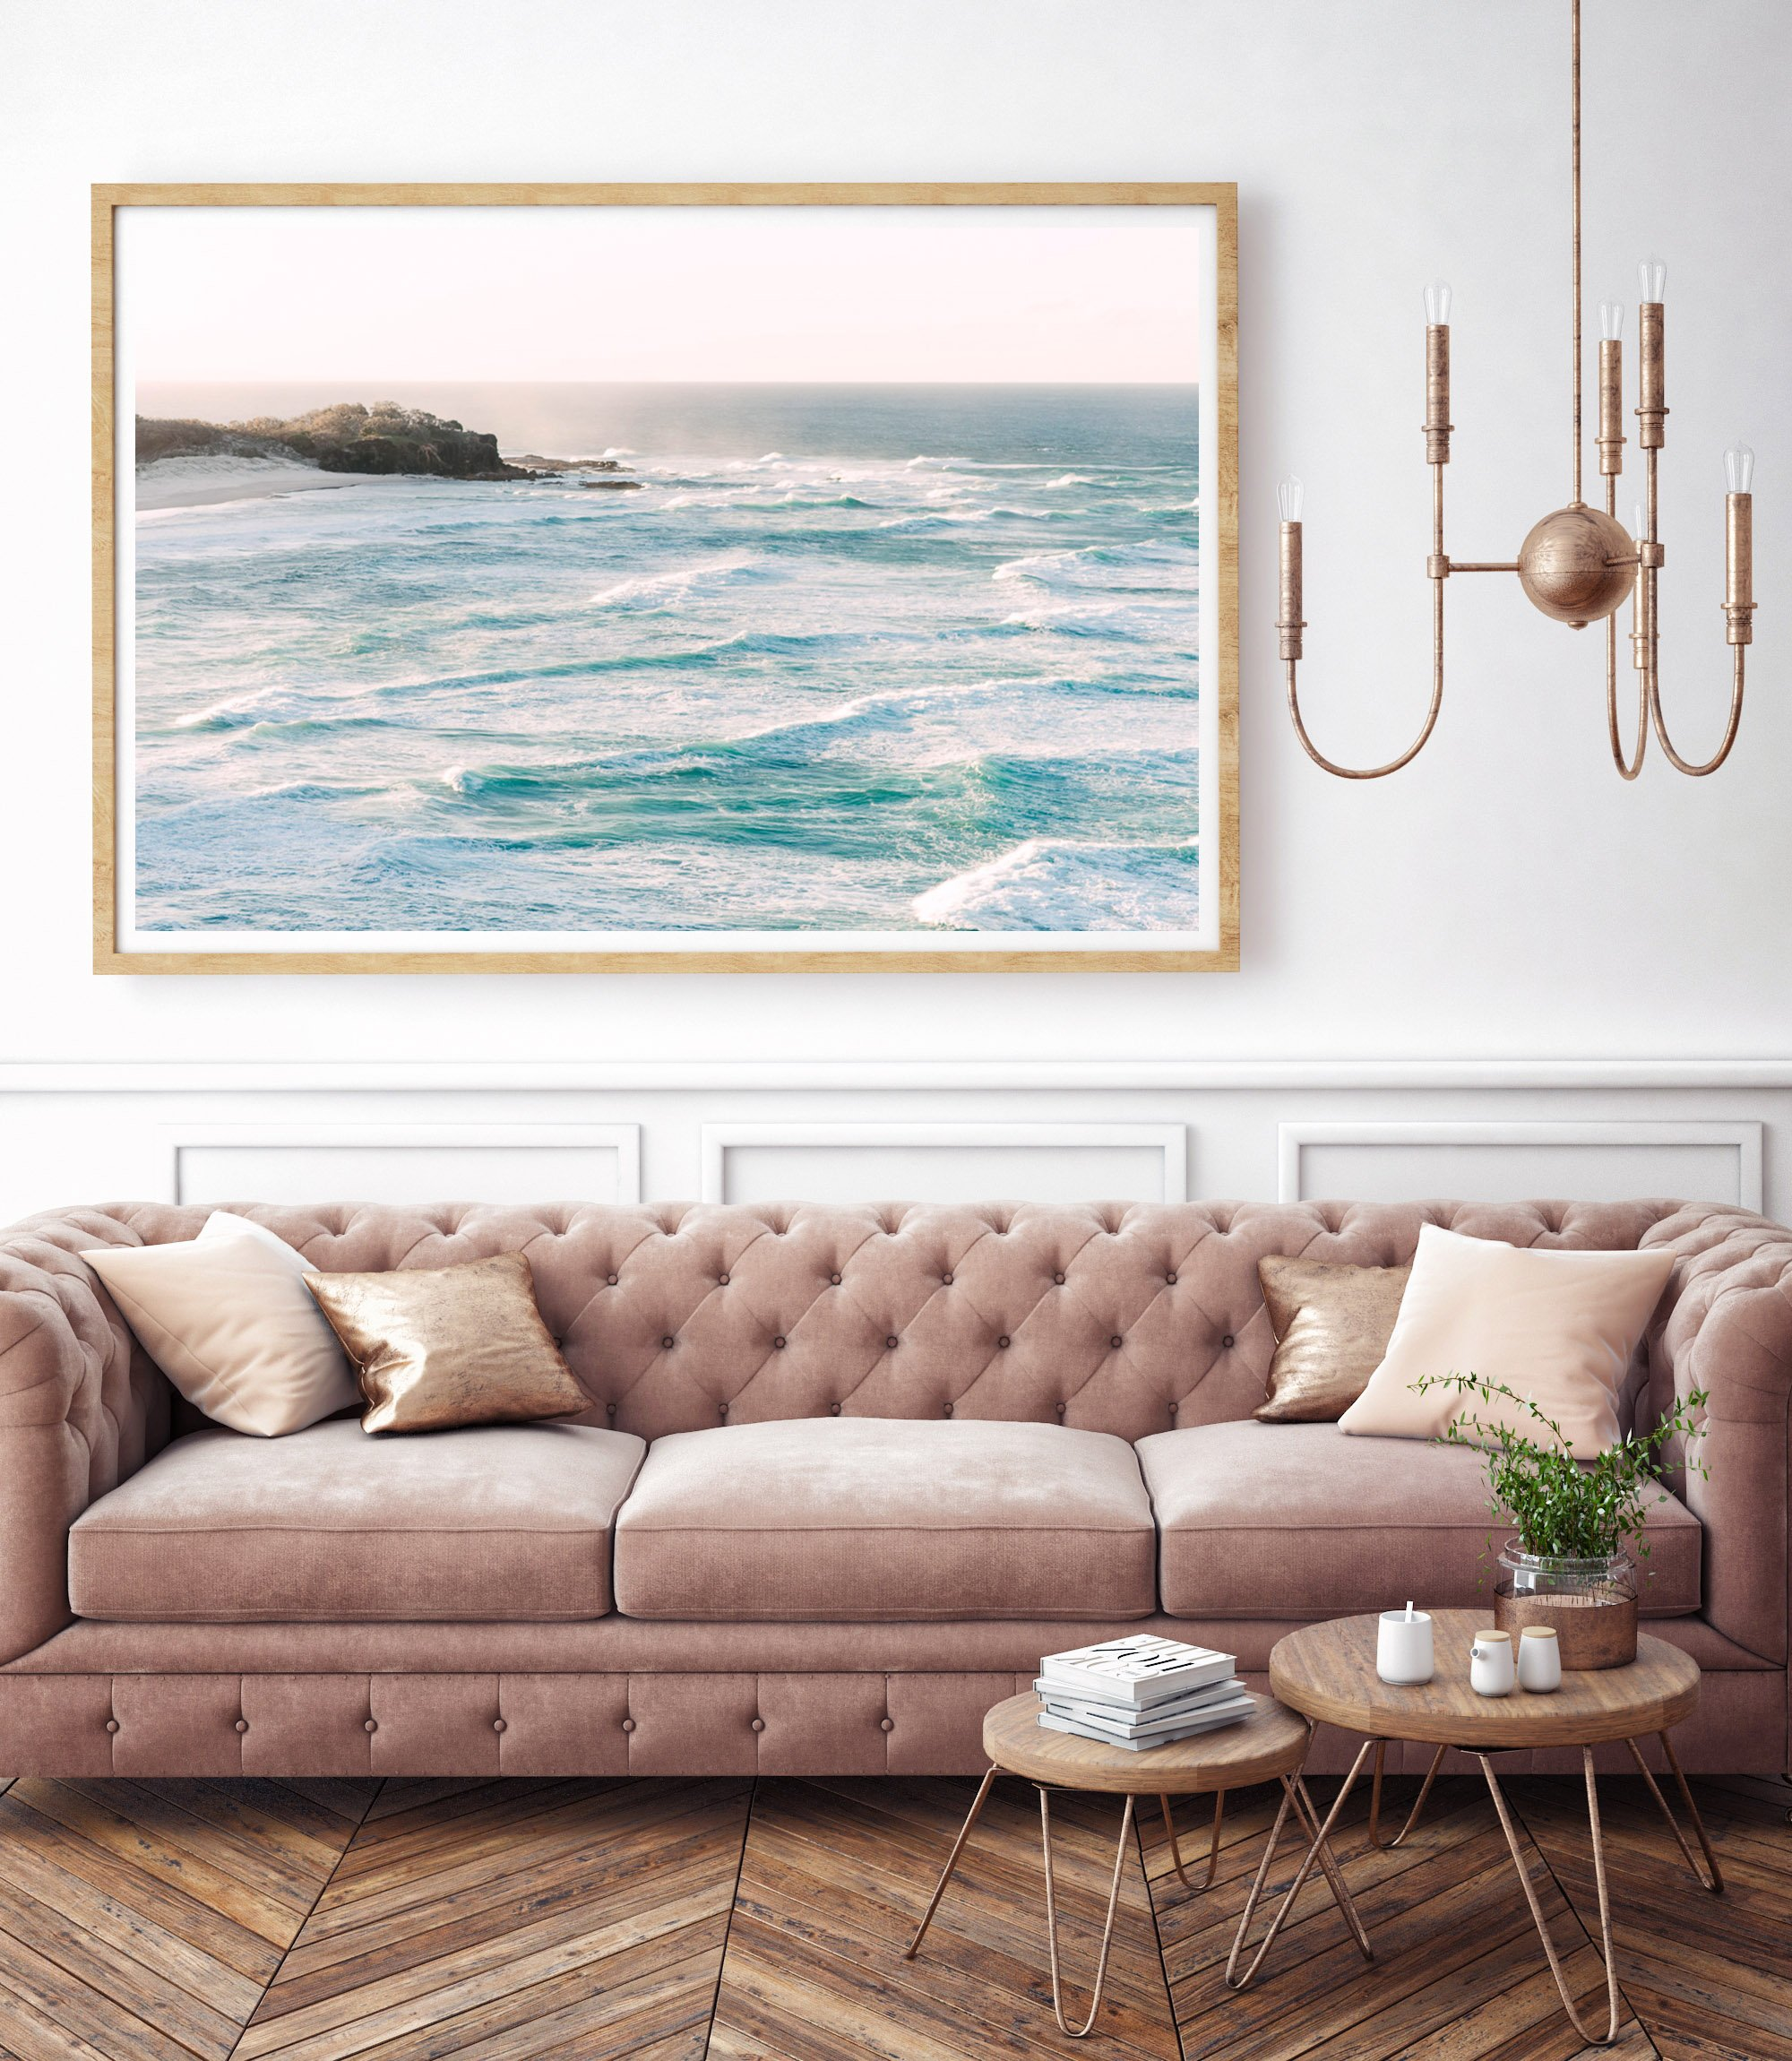 coastal inspired limited edition print for modern beach house interiors